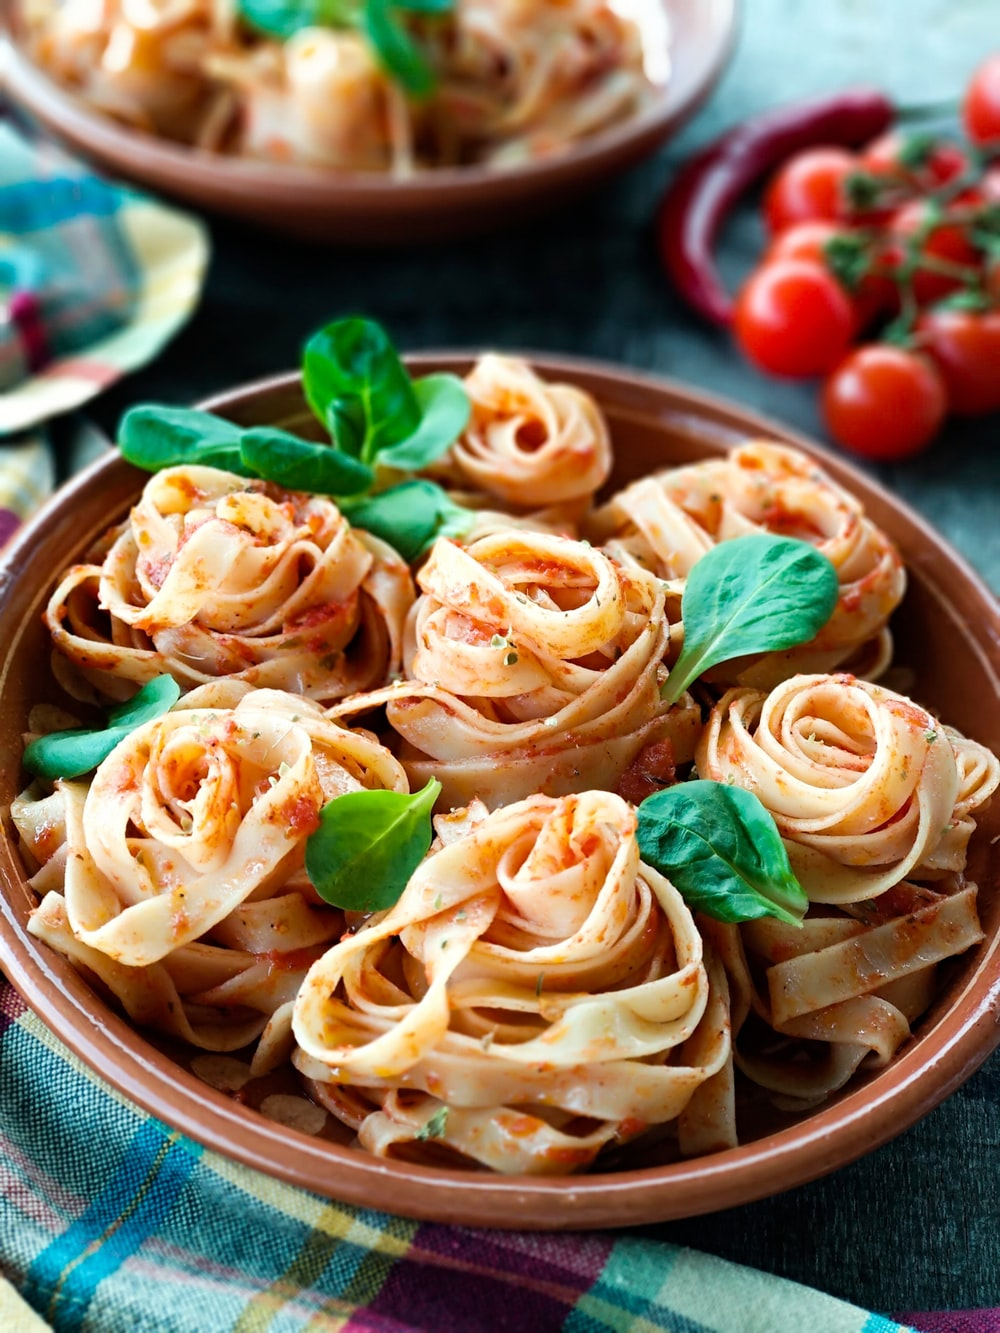 Some Tips For Picking the Best Italian Food in Italy